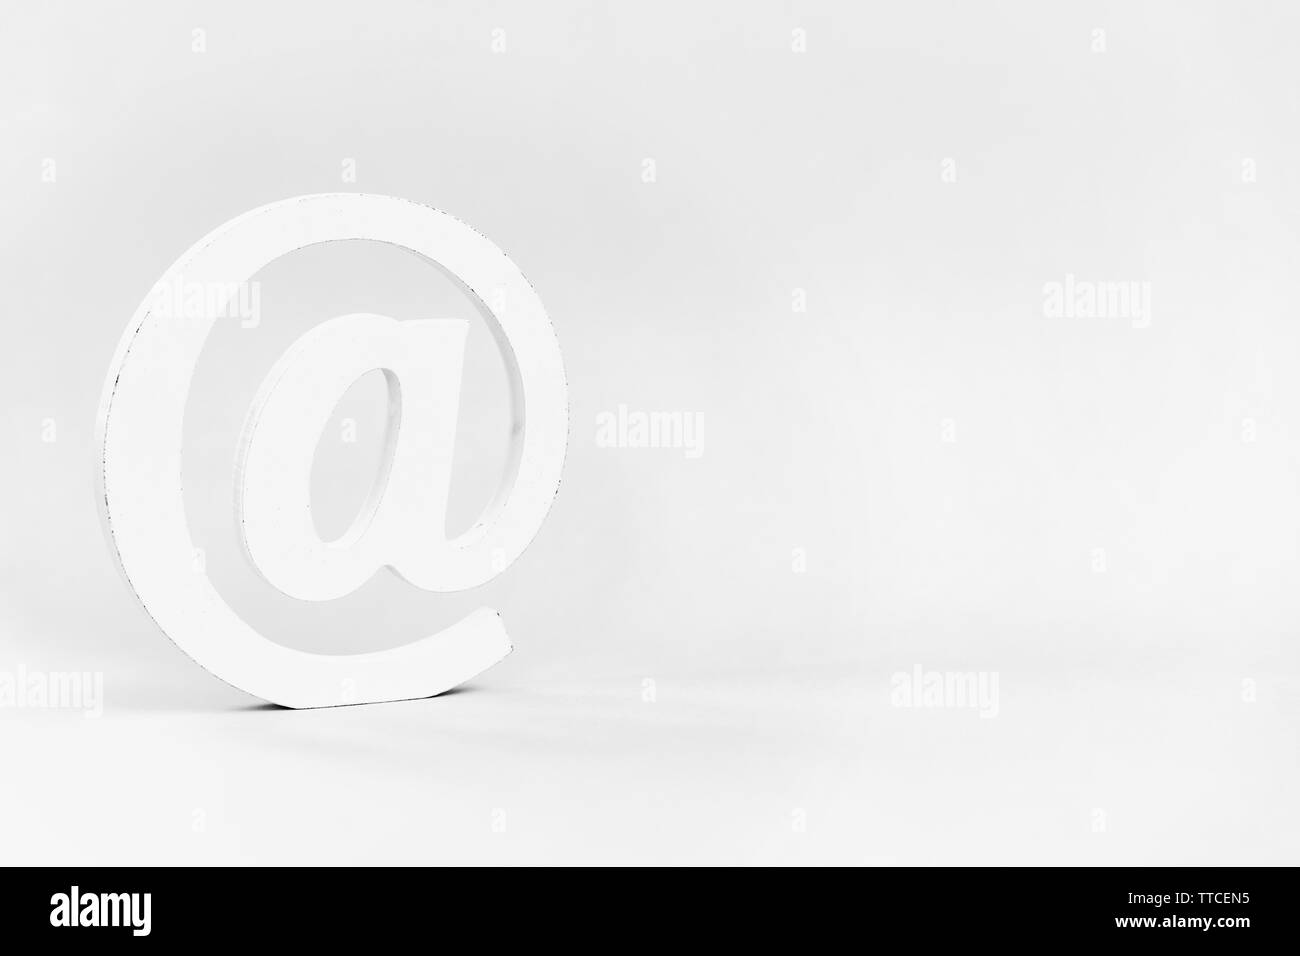 Email sign on blue background. Concept for email, communication or contact us - Stock Image